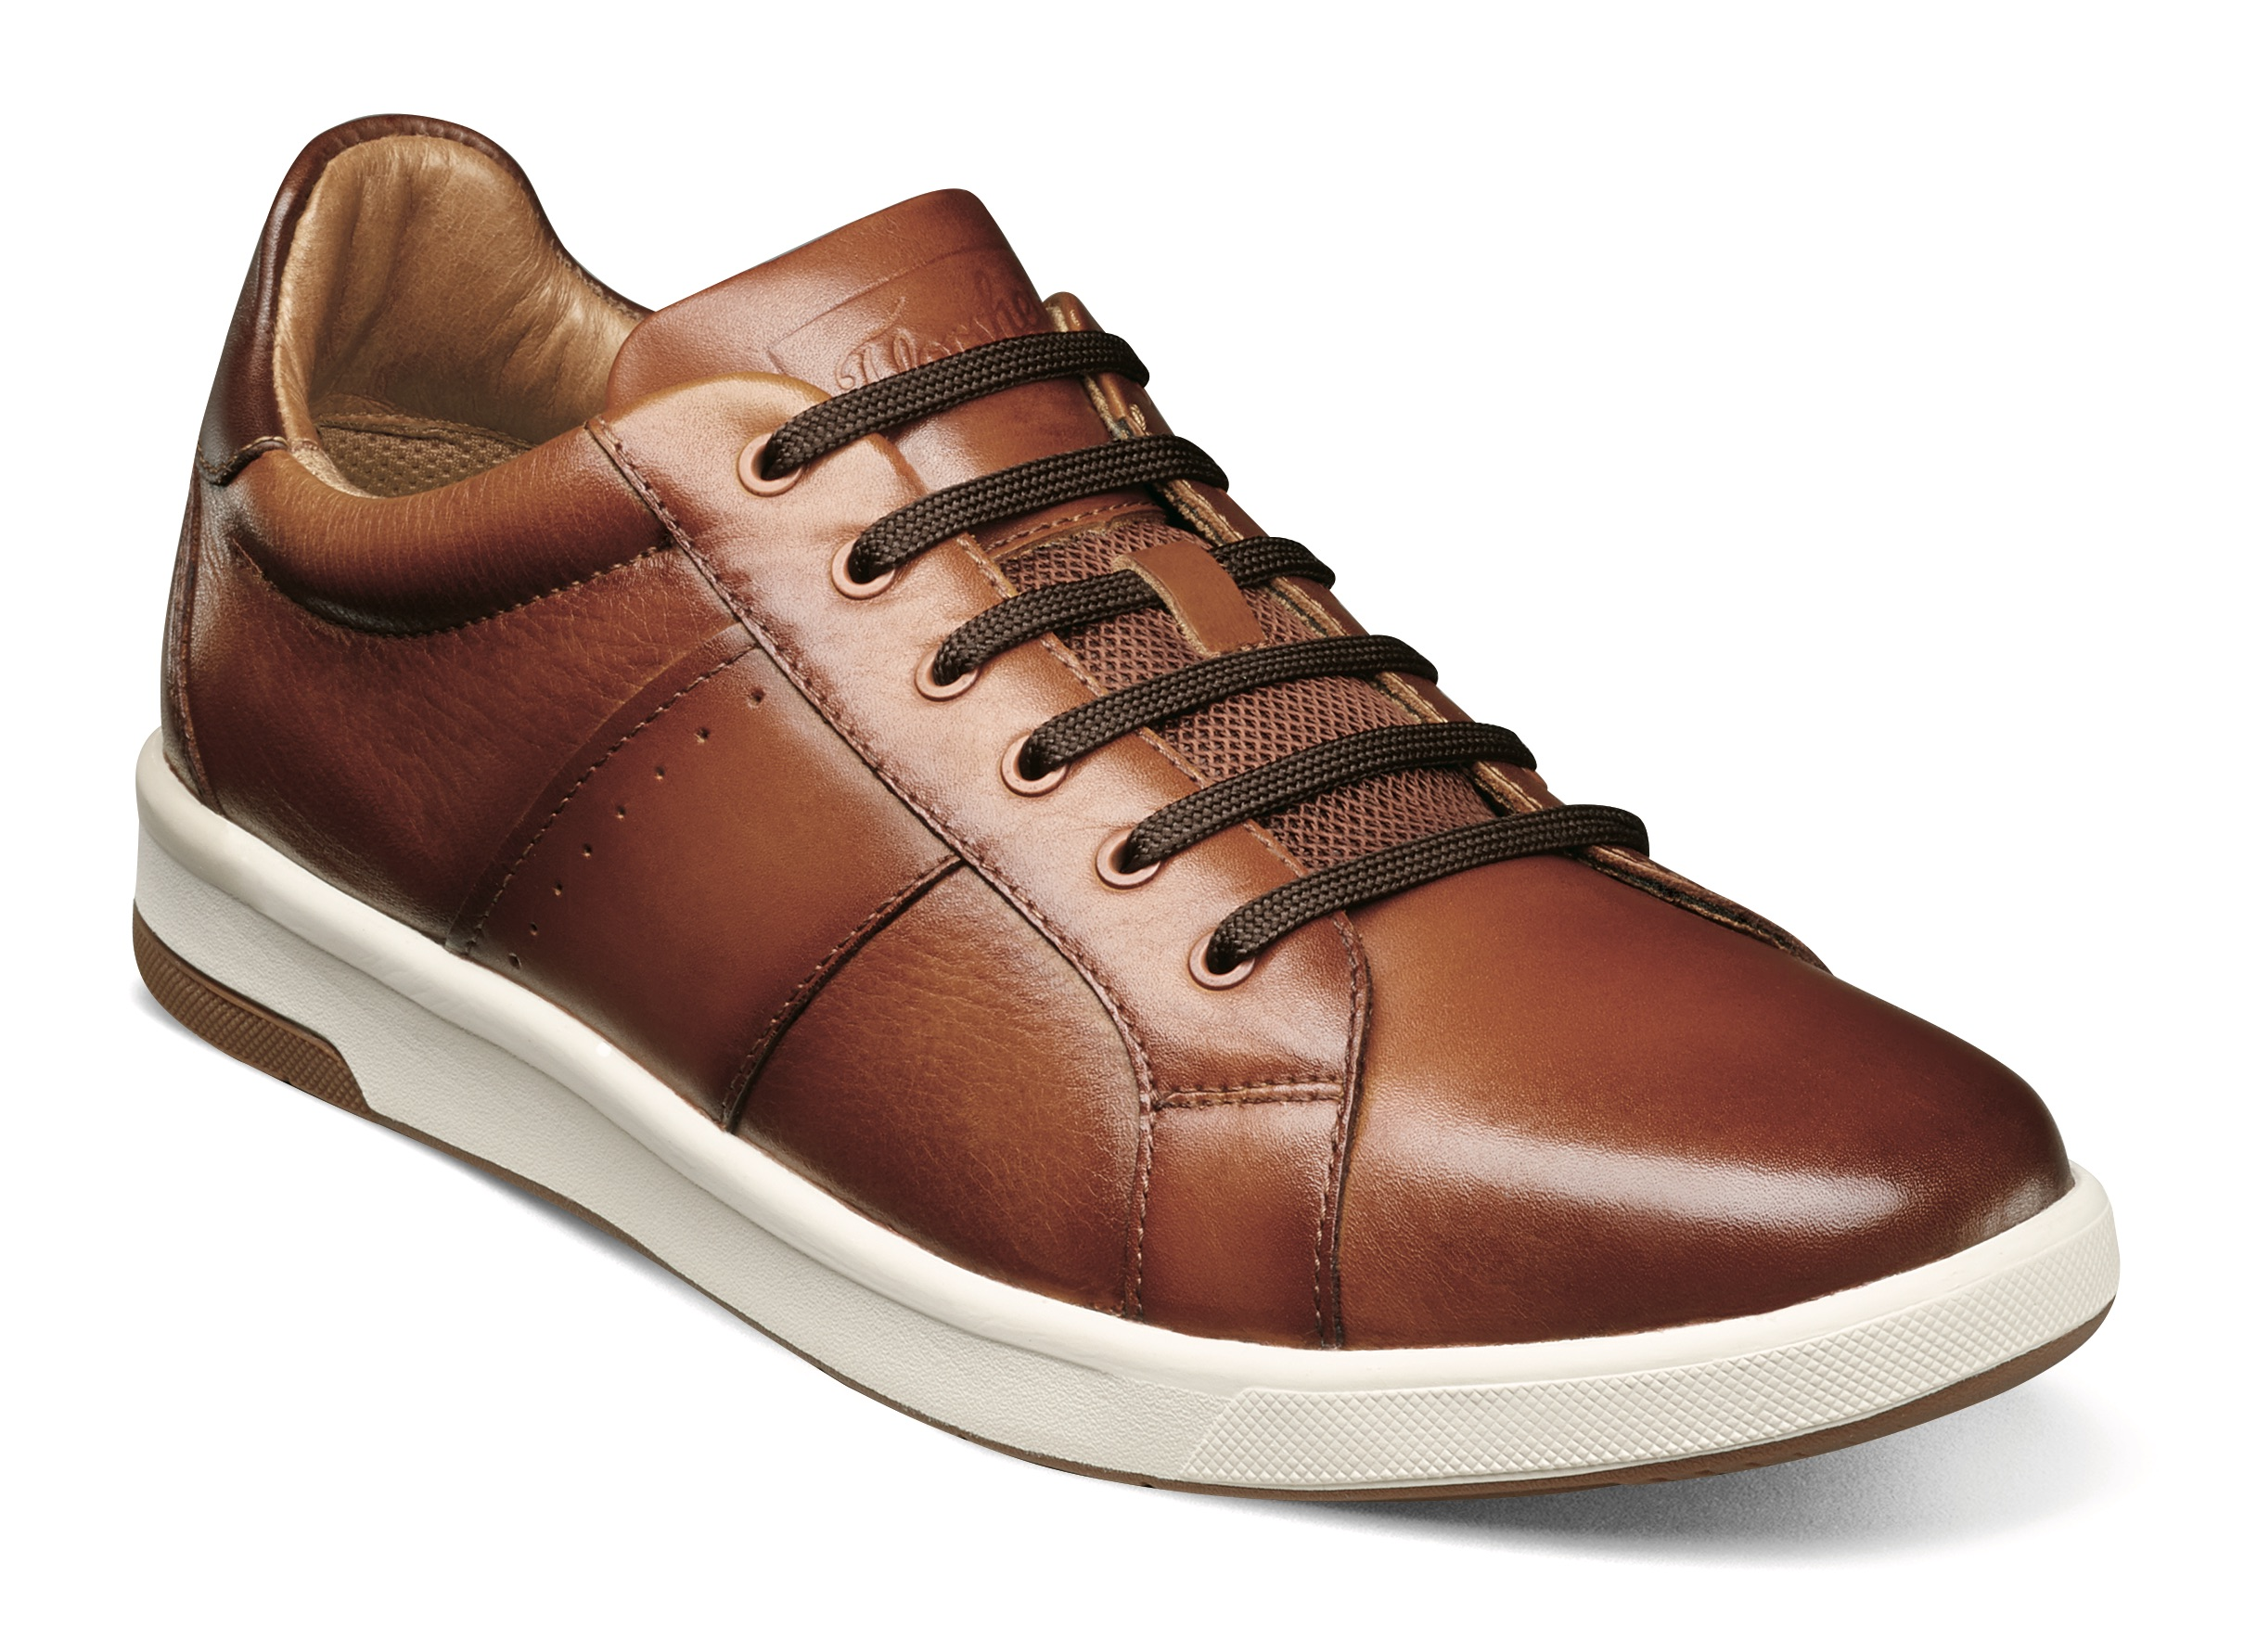 Florsheim-Crossover-Lace-Toe-Sneaker in brown